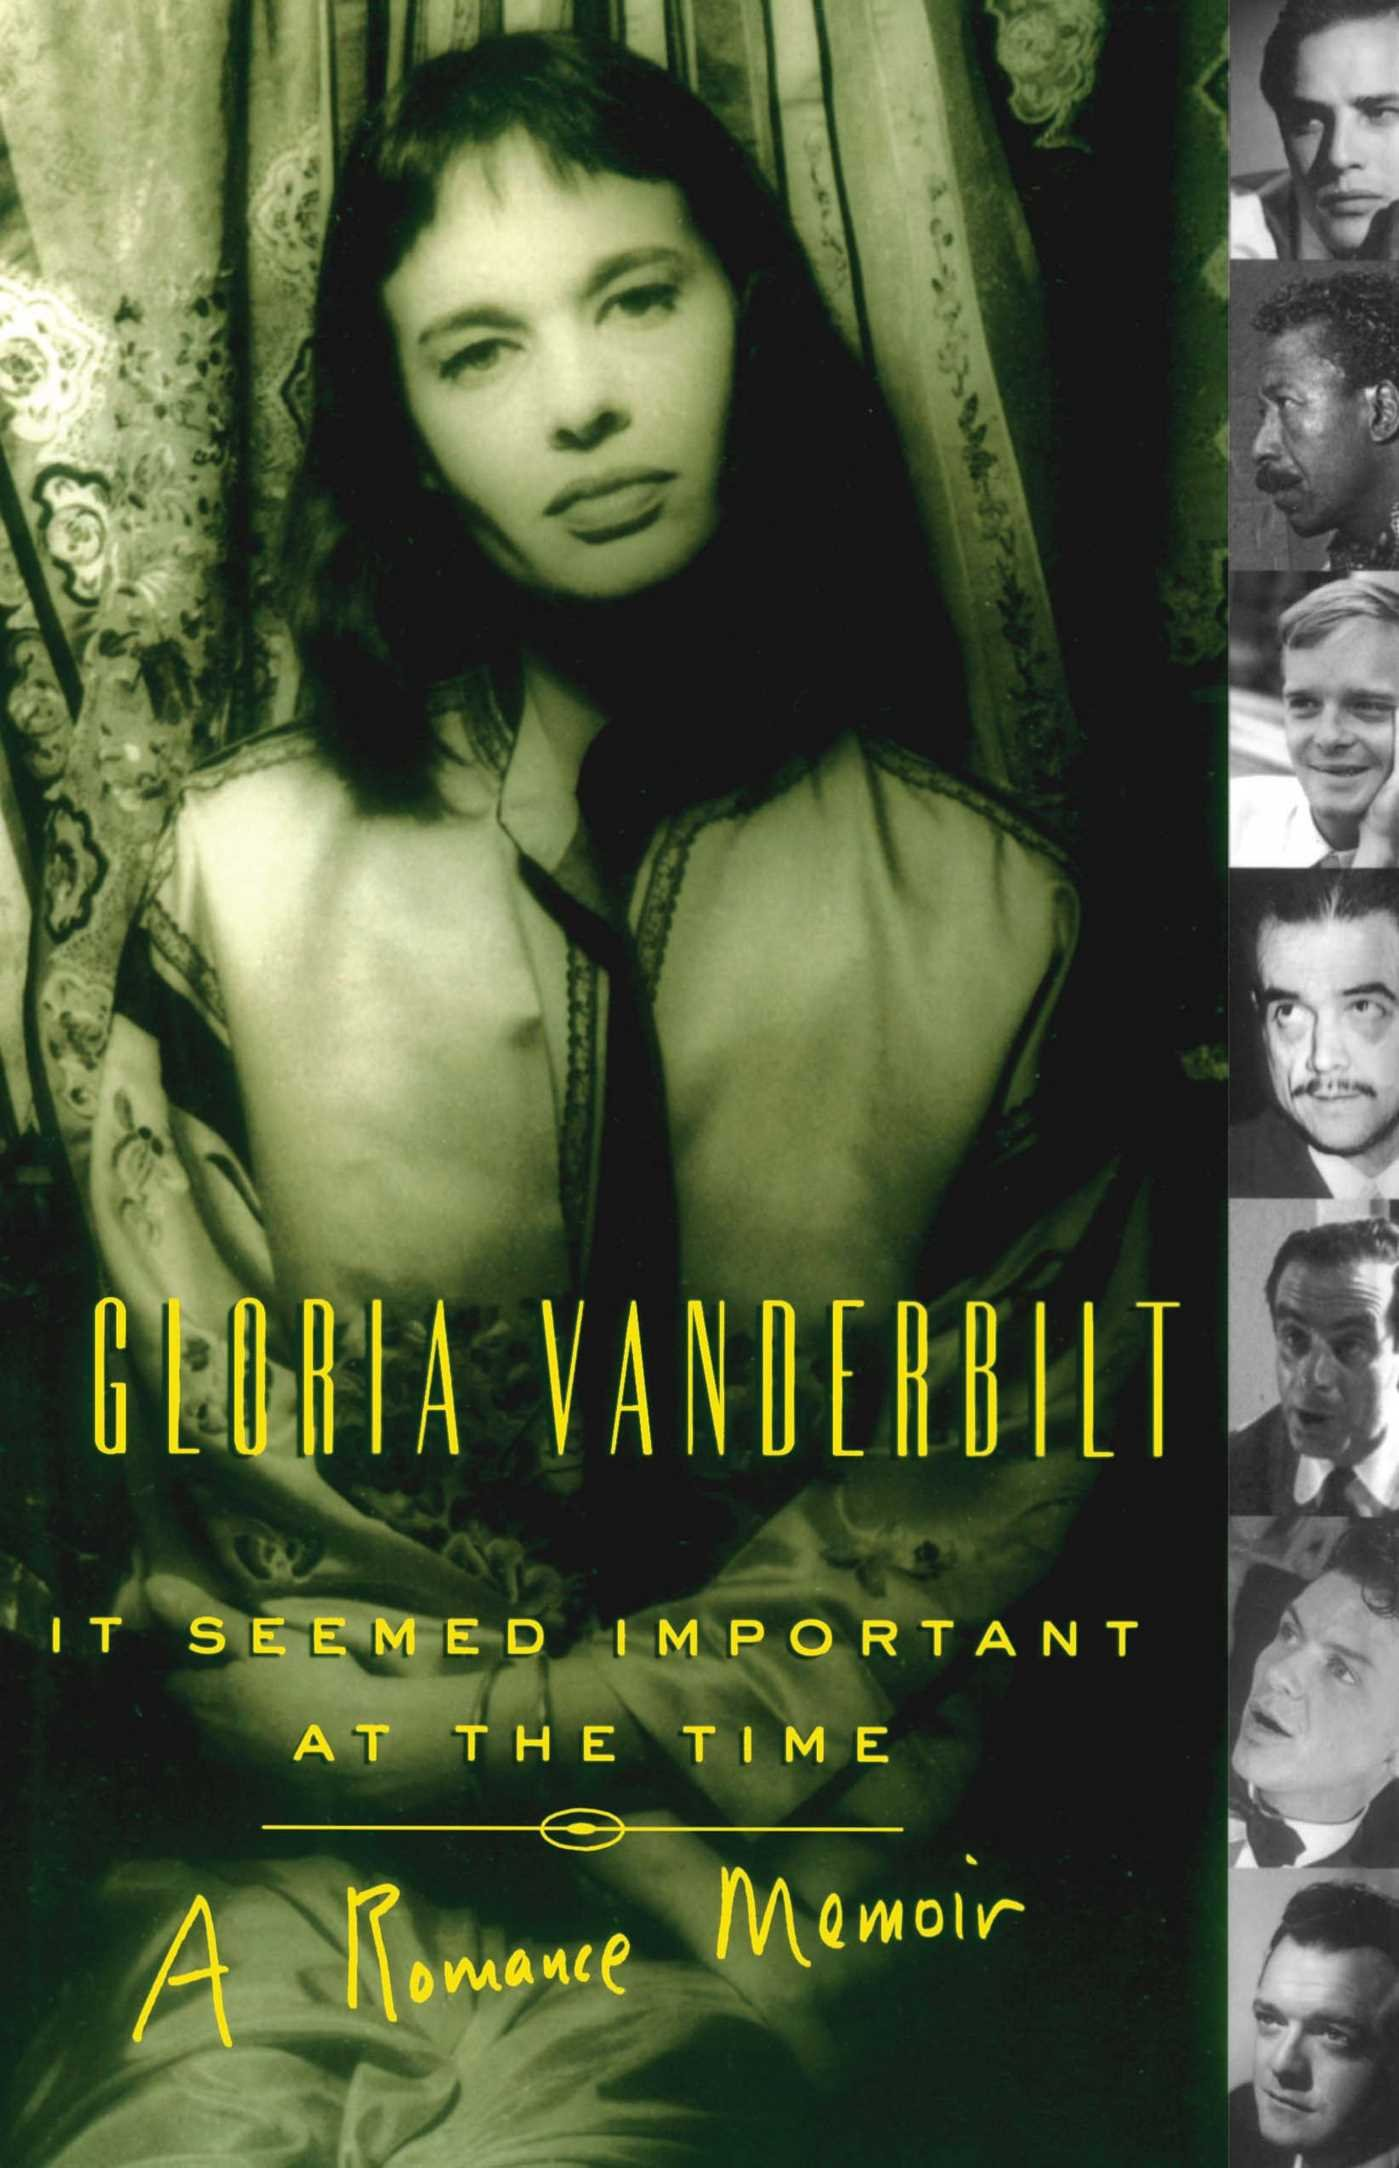 Gloria Vanderbilt Full Sex Tape